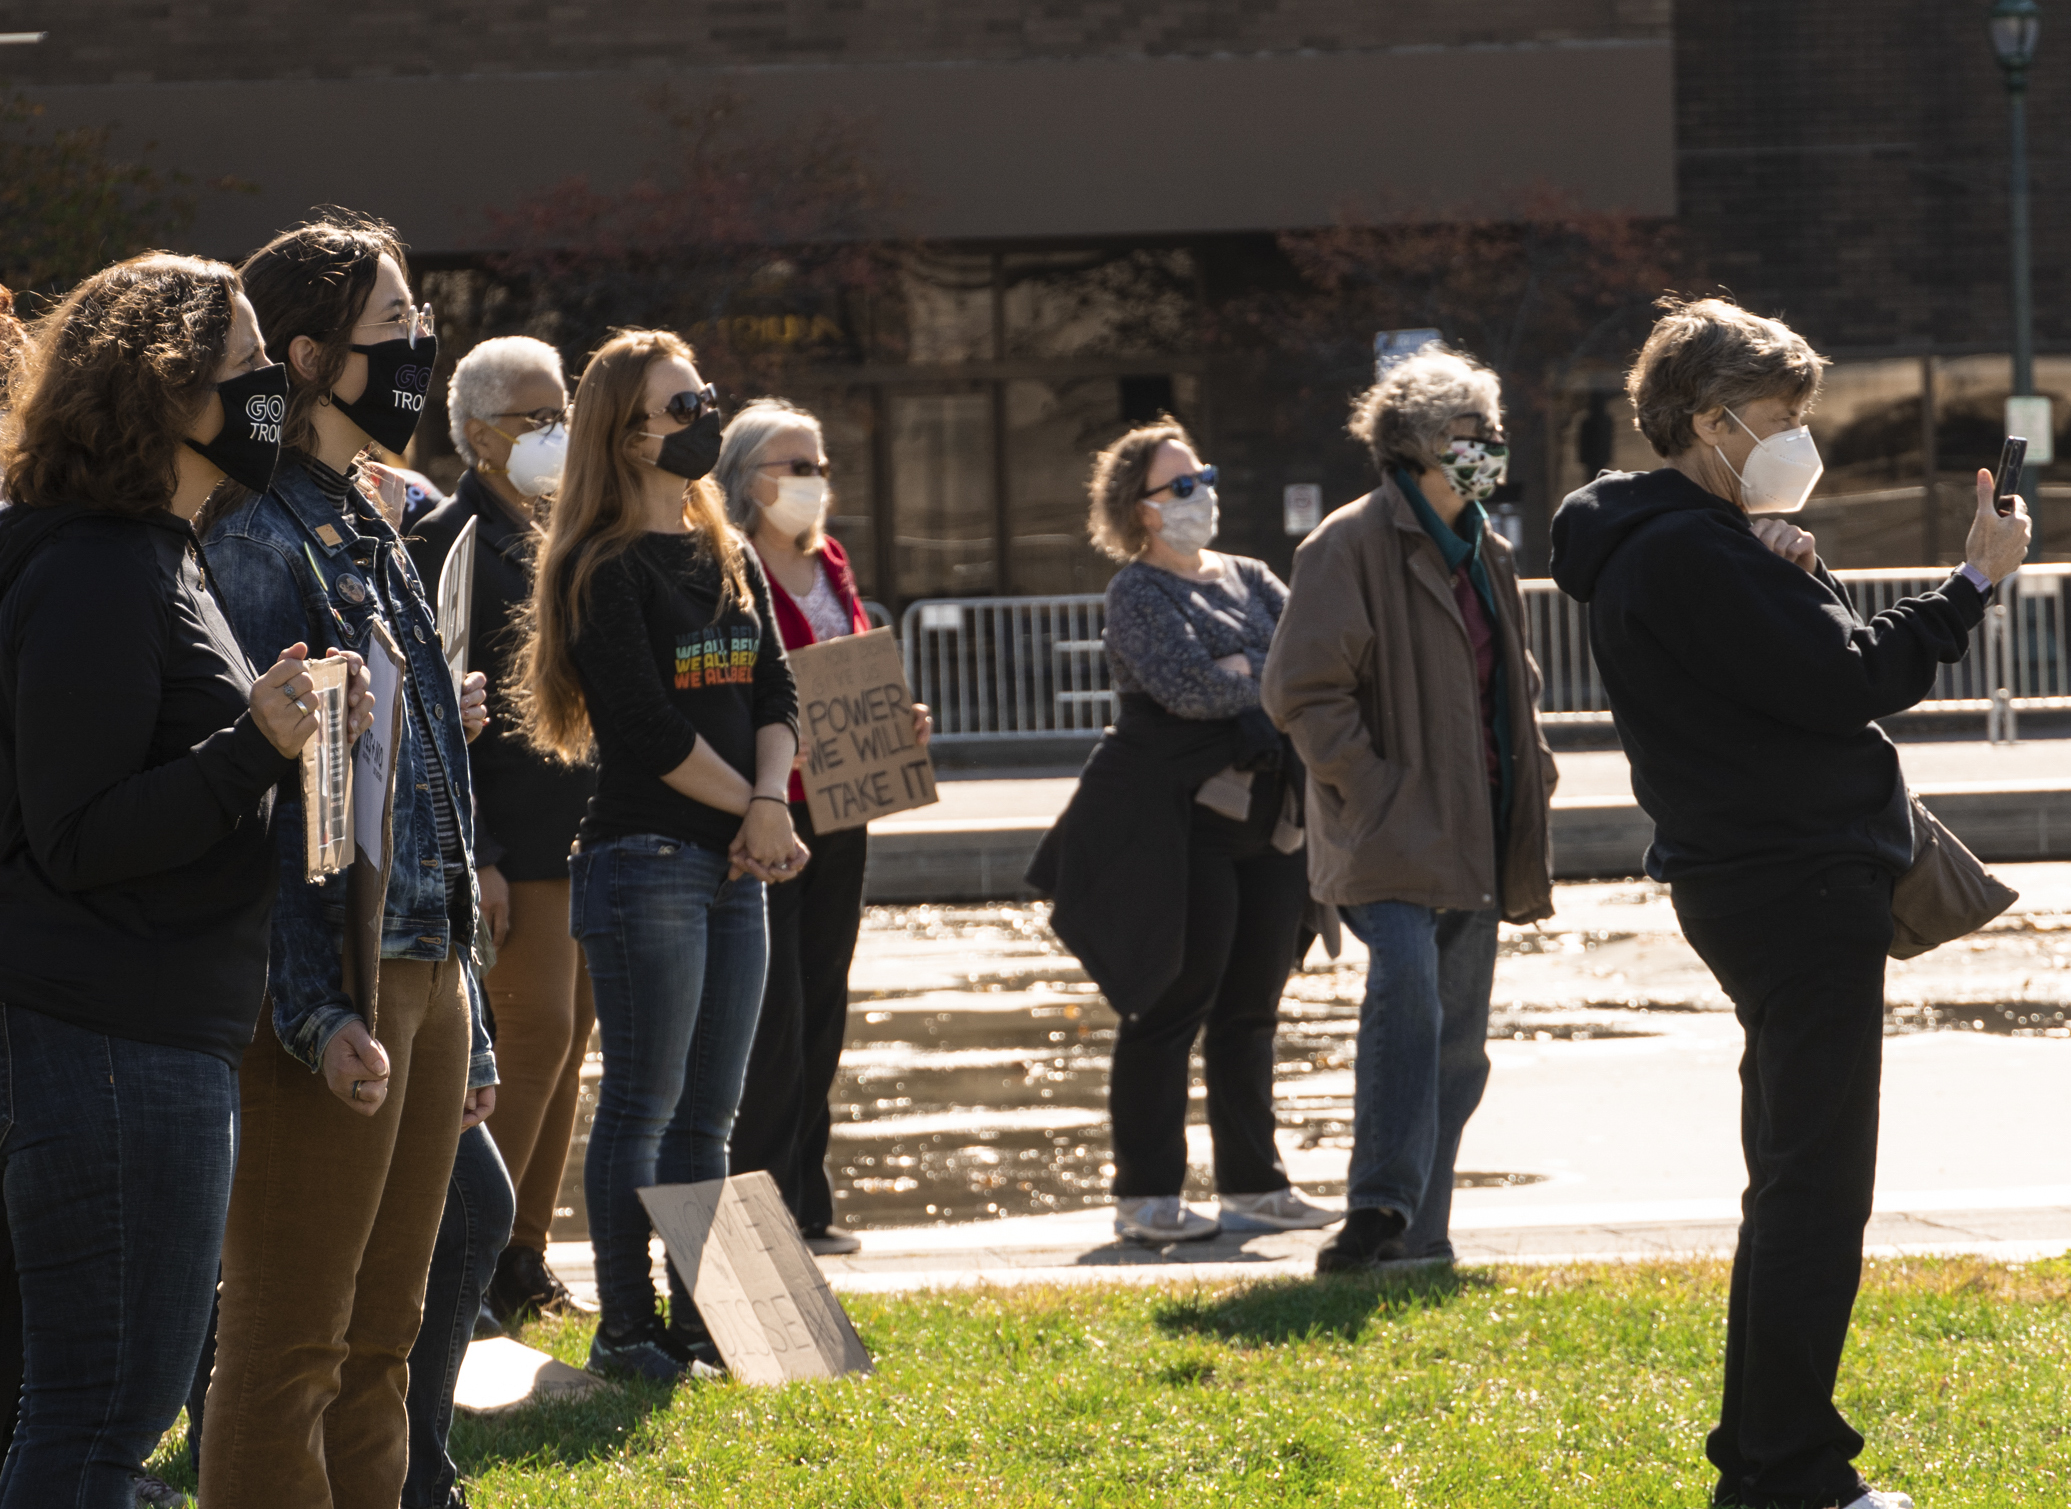 Protesters gathered on the lawn at Clinton Square Satruday afternoon. The event lasted around an hour and half. Masks and social distancing were required of attendees. (Photo by Patrick Linehan)